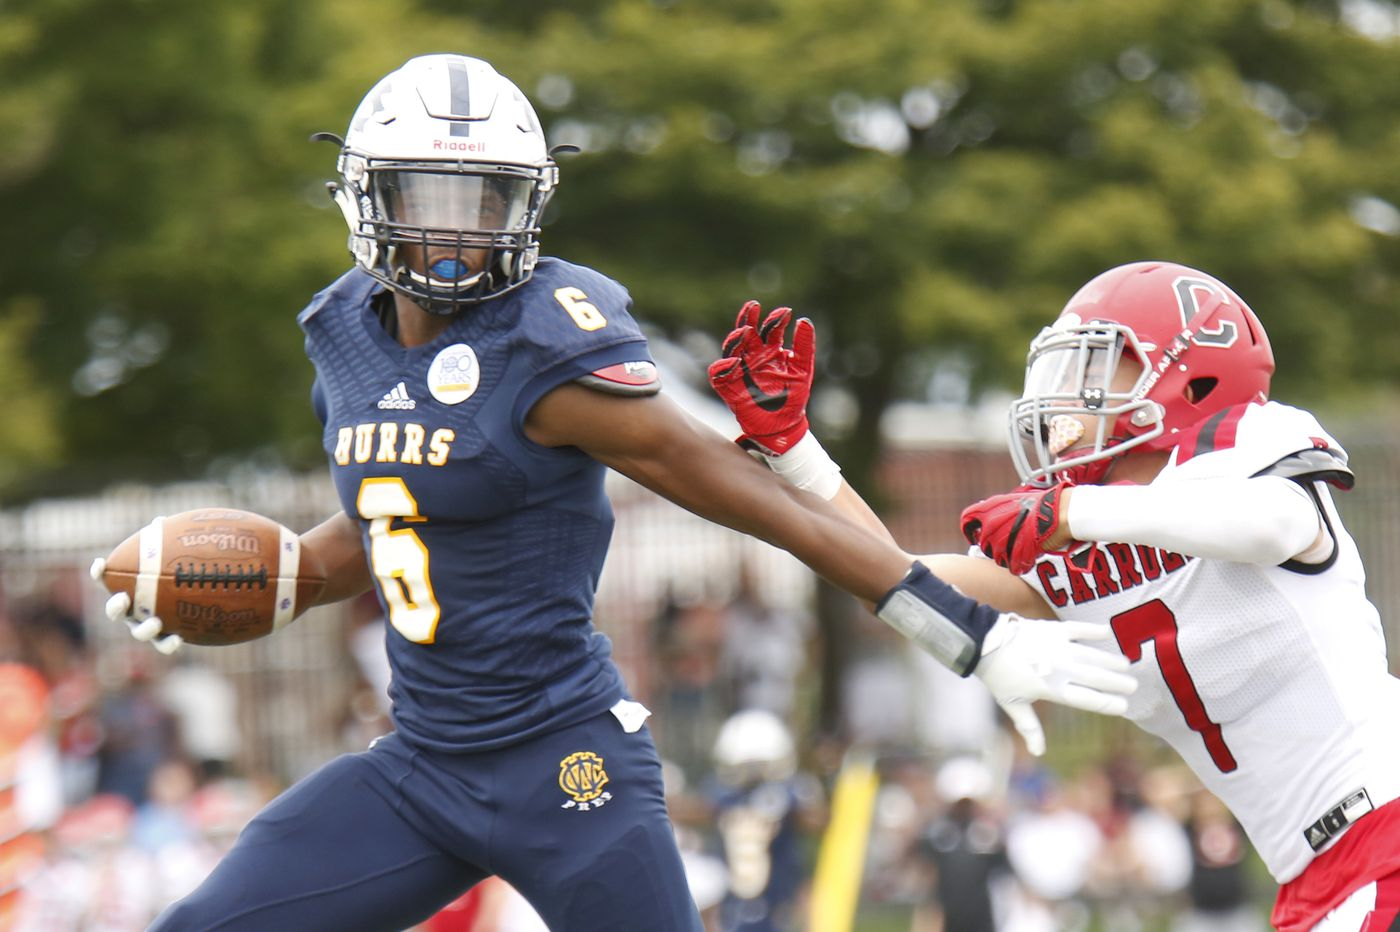 West Catholic overcomes Cardinal O'Hara in Catholic League football